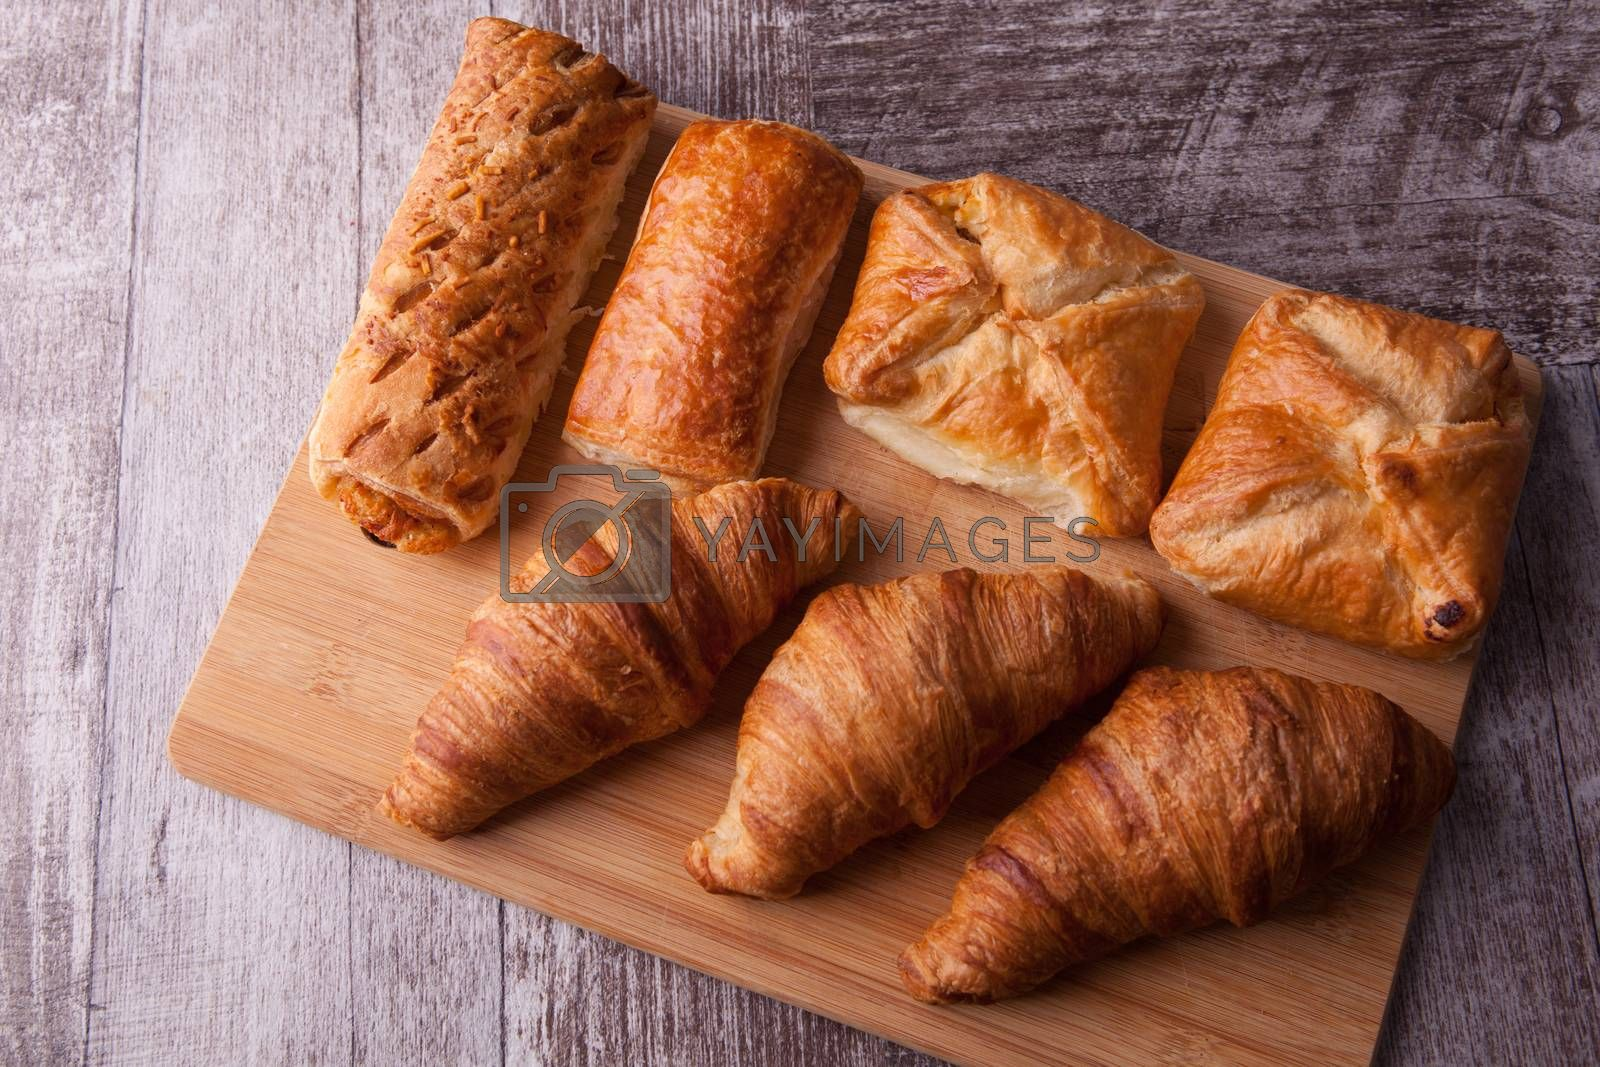 An assortment of freshly baked pastry aligned on cutting board by DCStudio